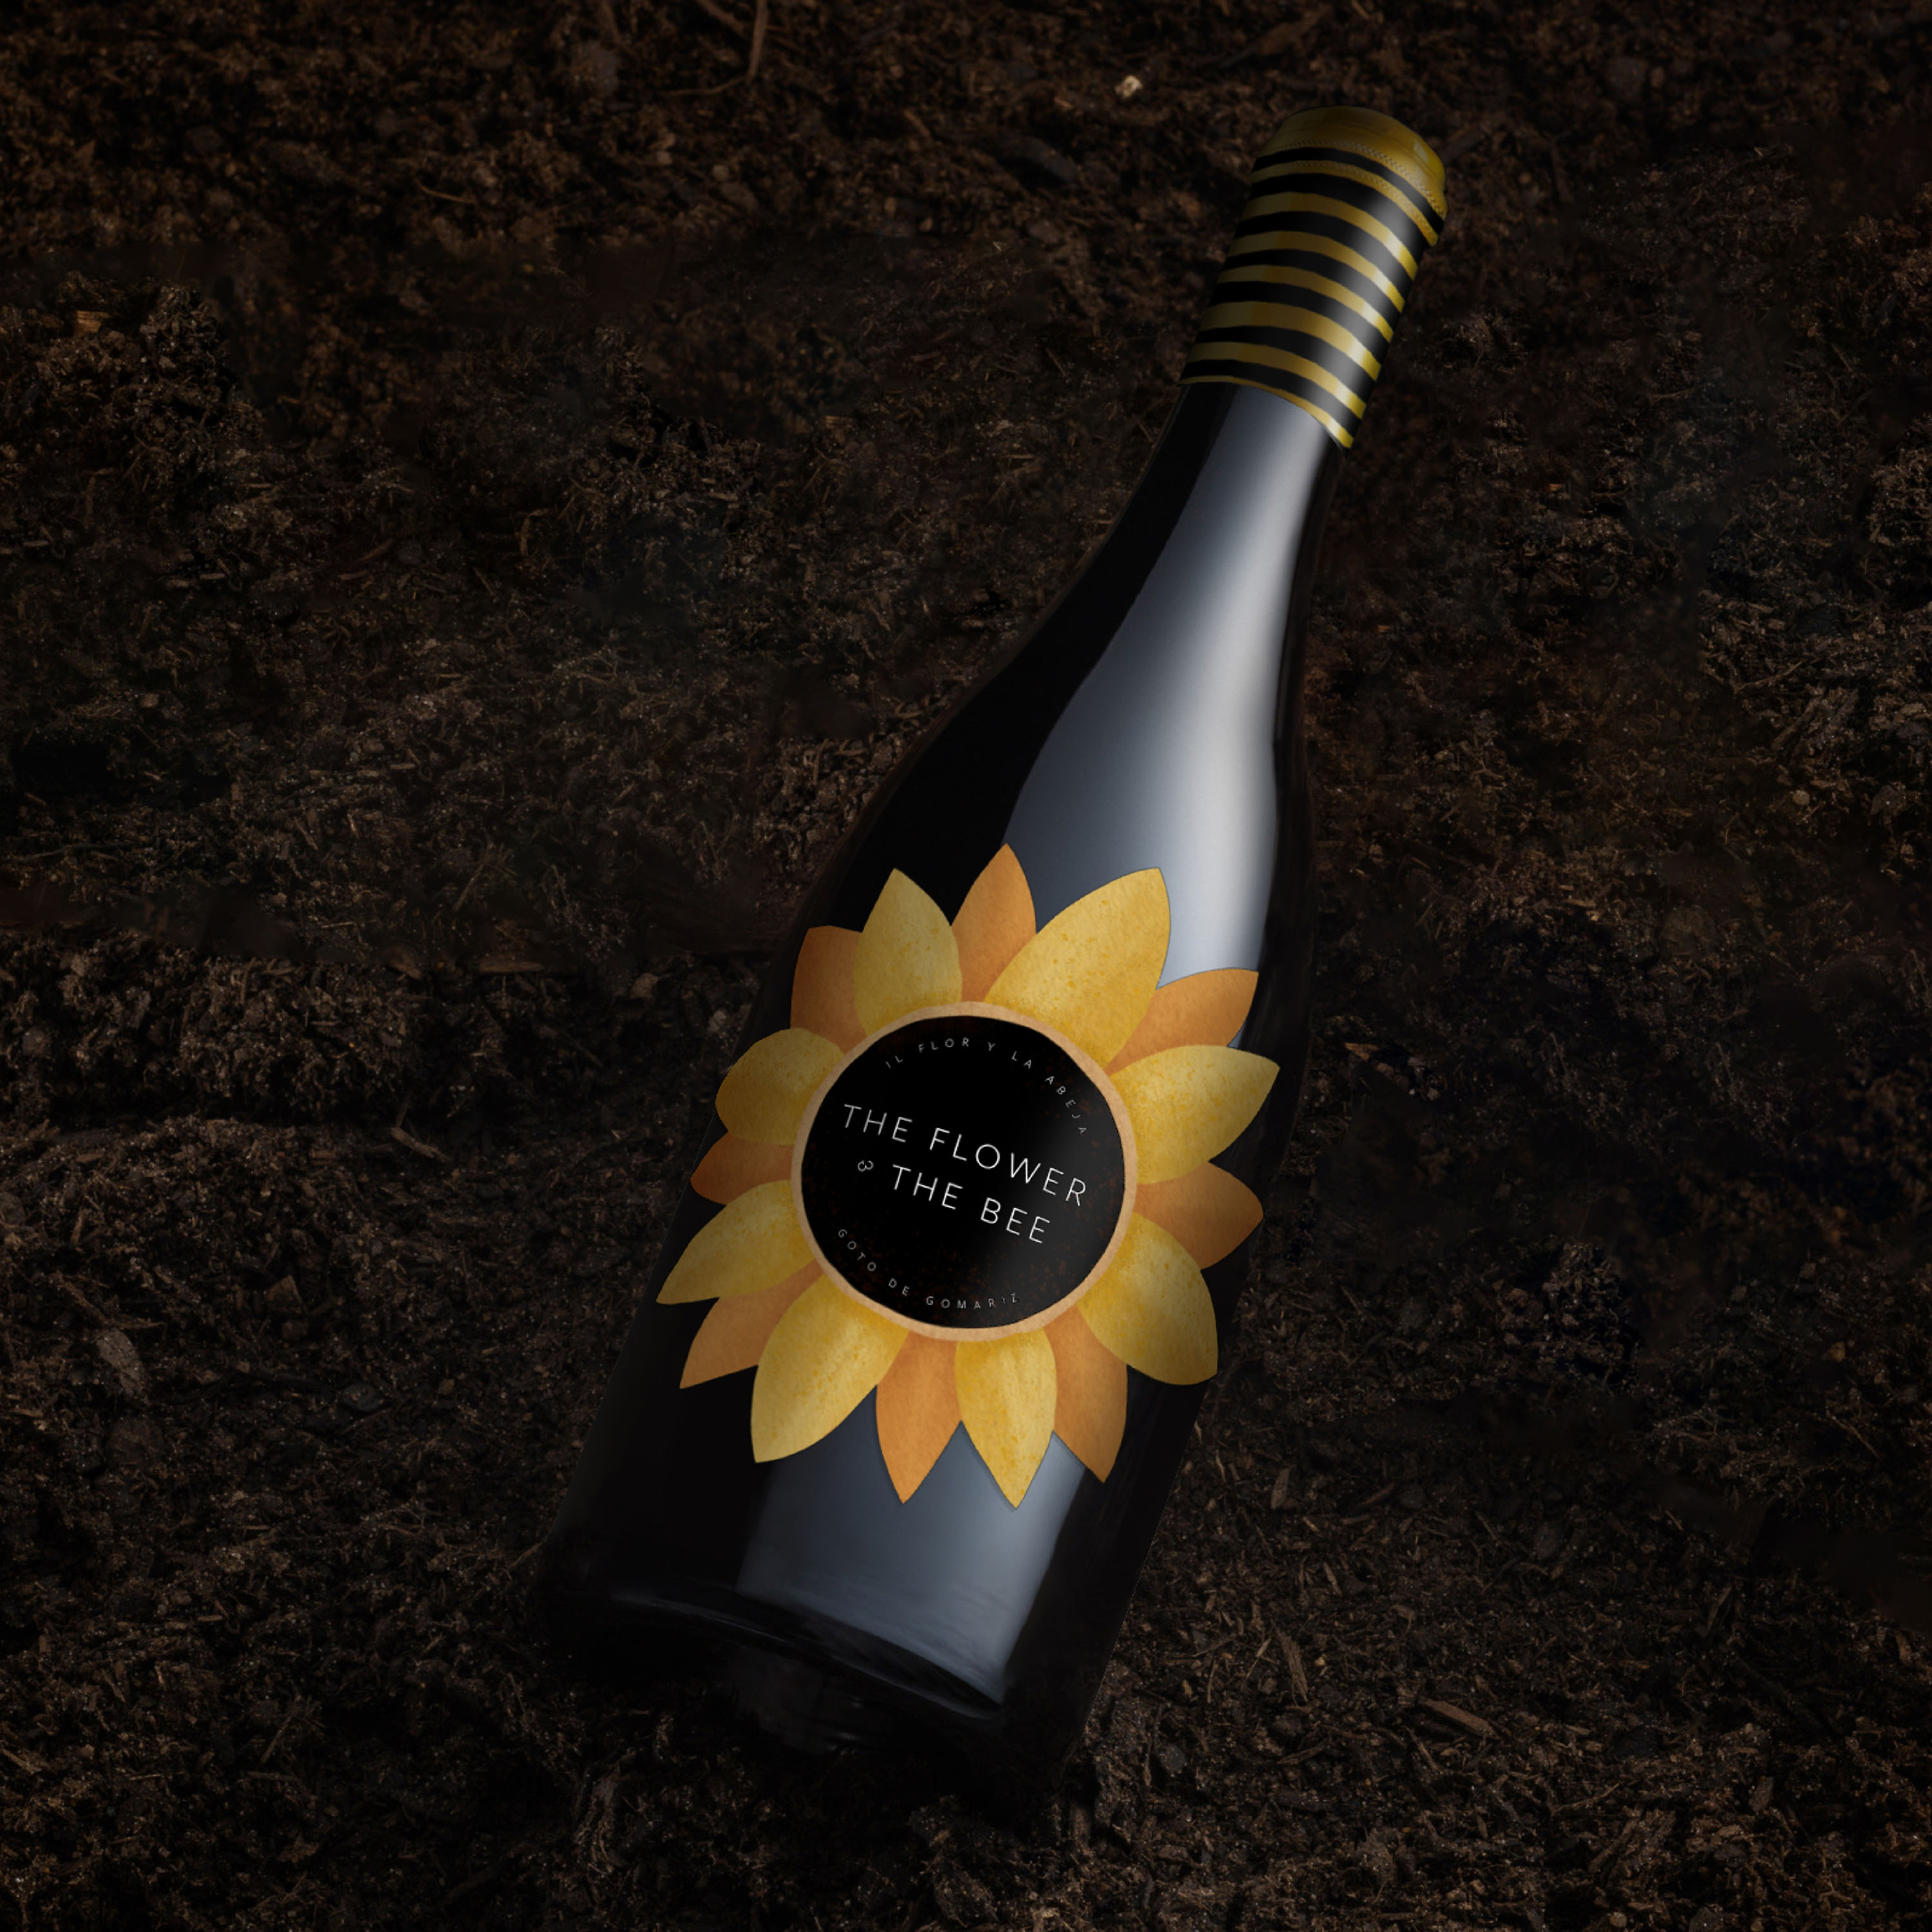 Creating a Buzz Around this Wine Label